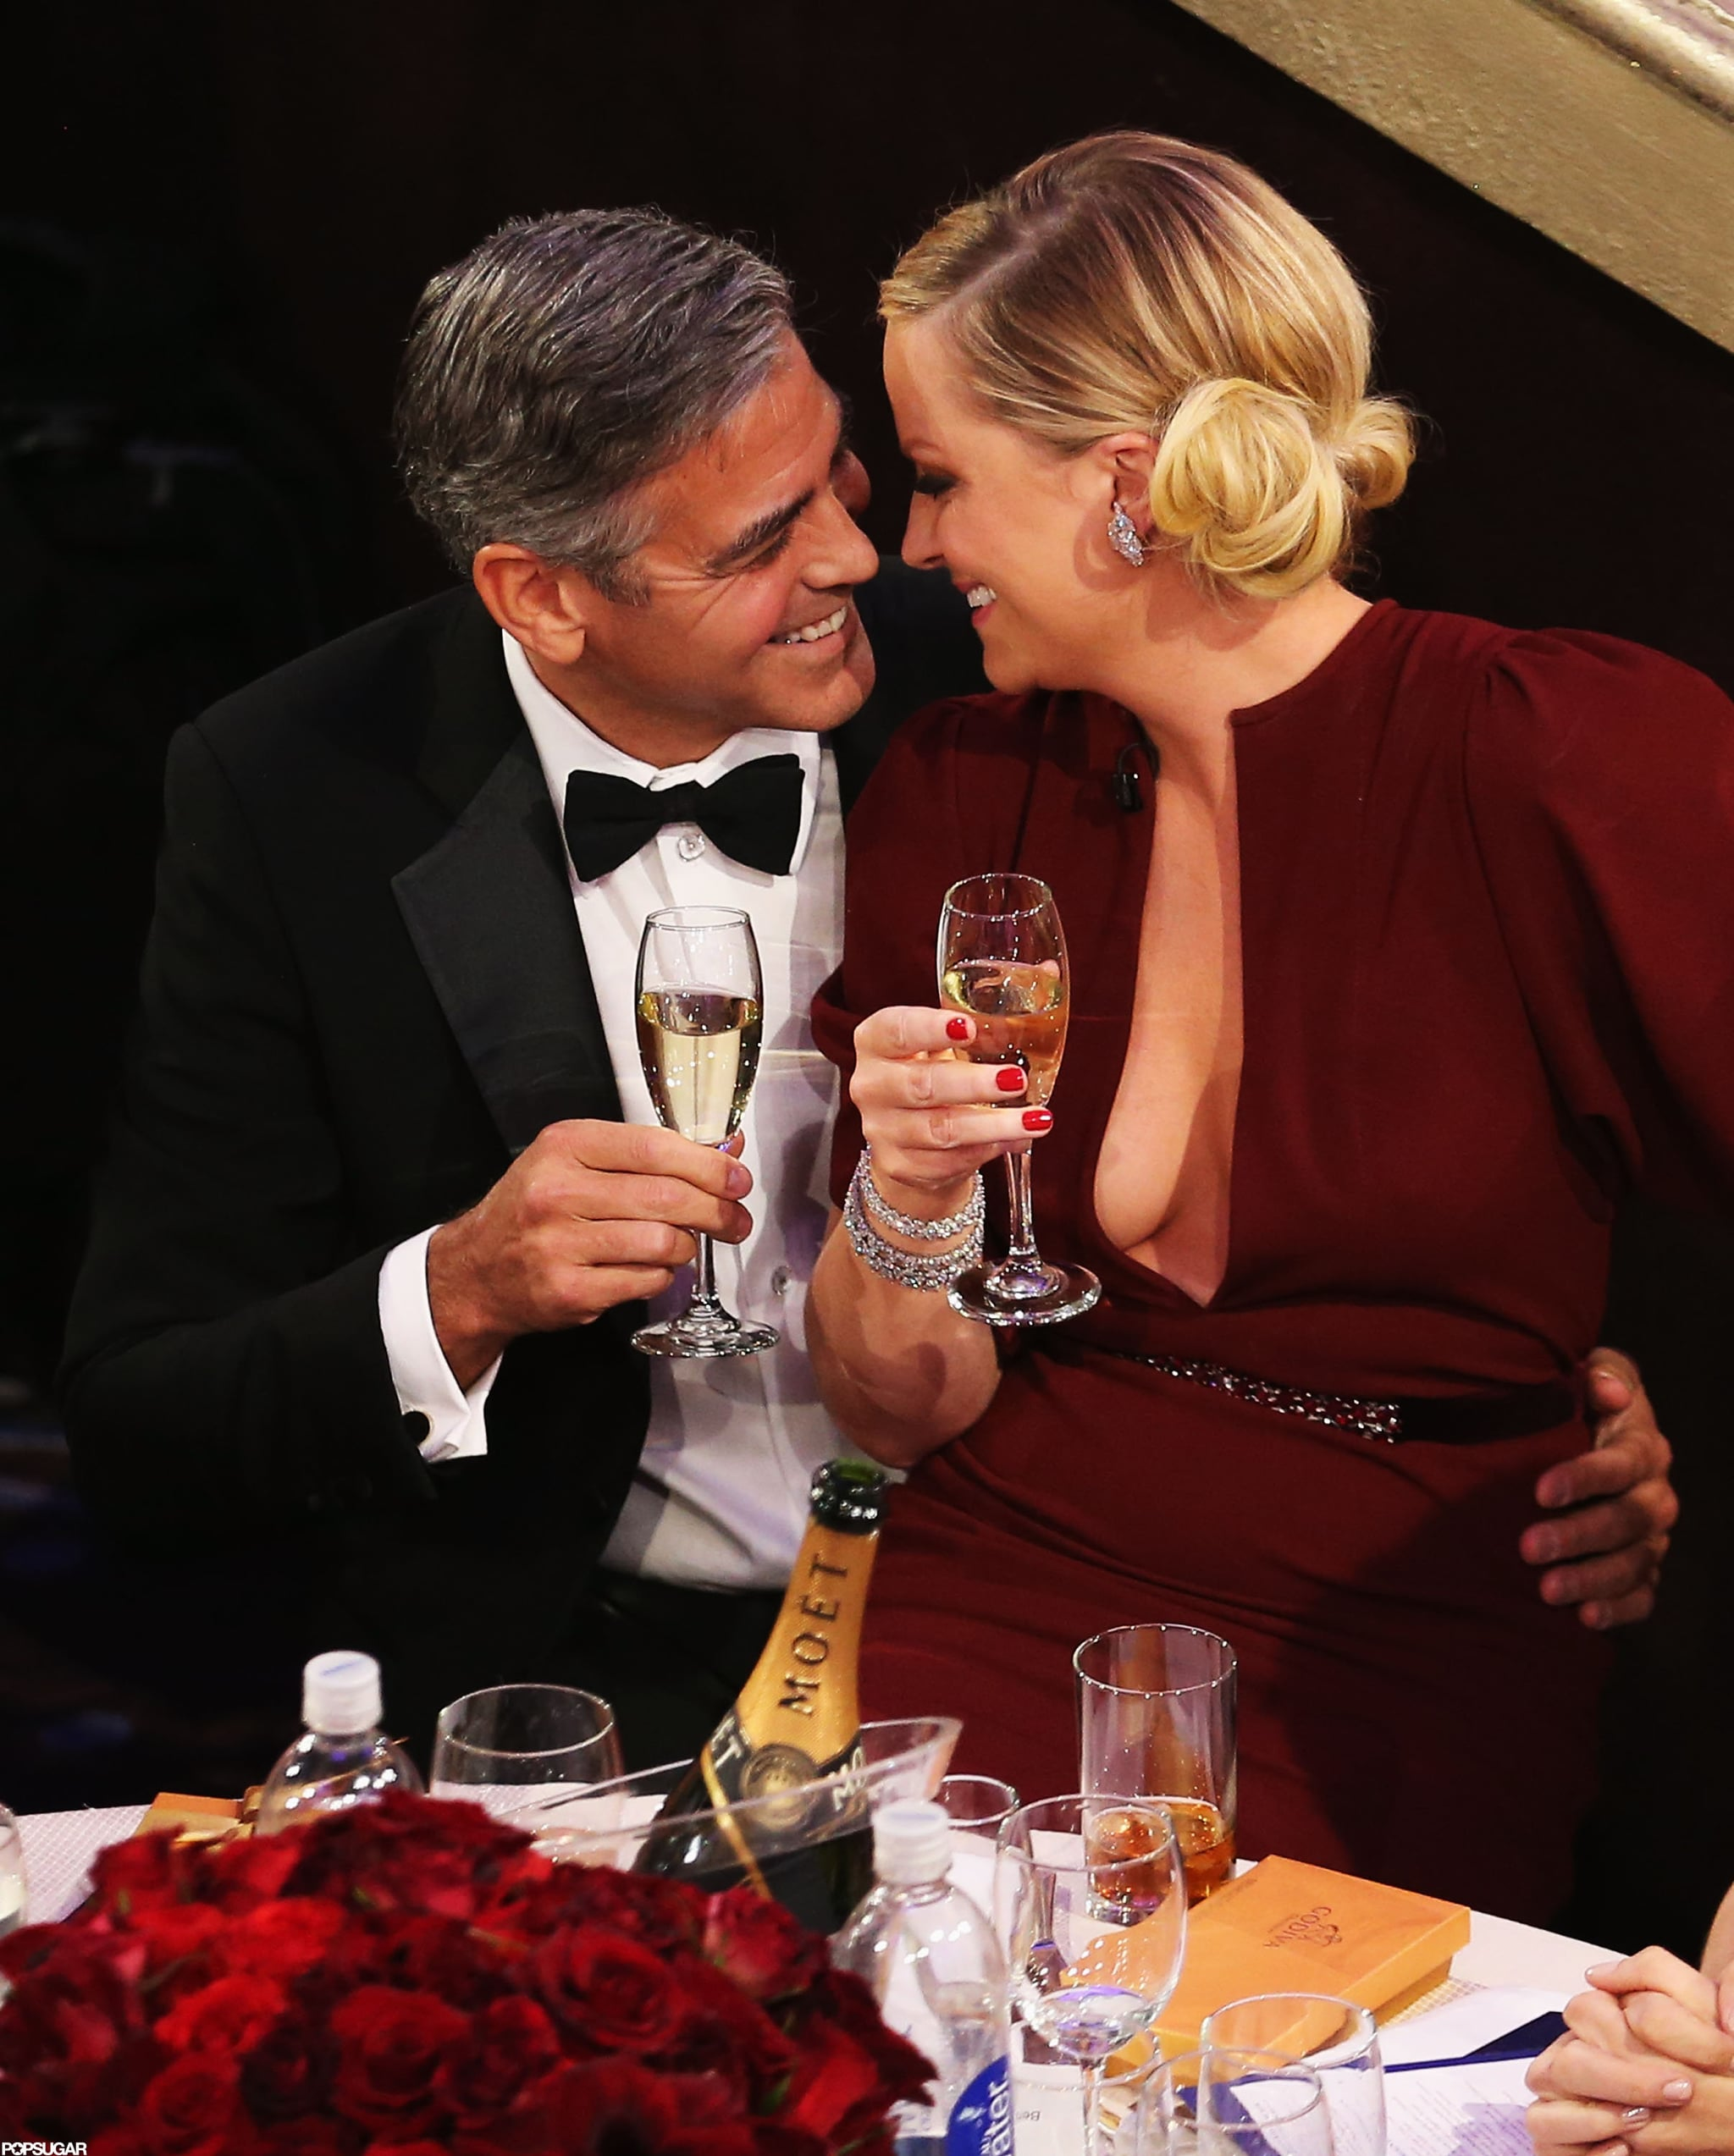 Host Amy Poehler and George Clooney shared a moment during the Golden Globes.